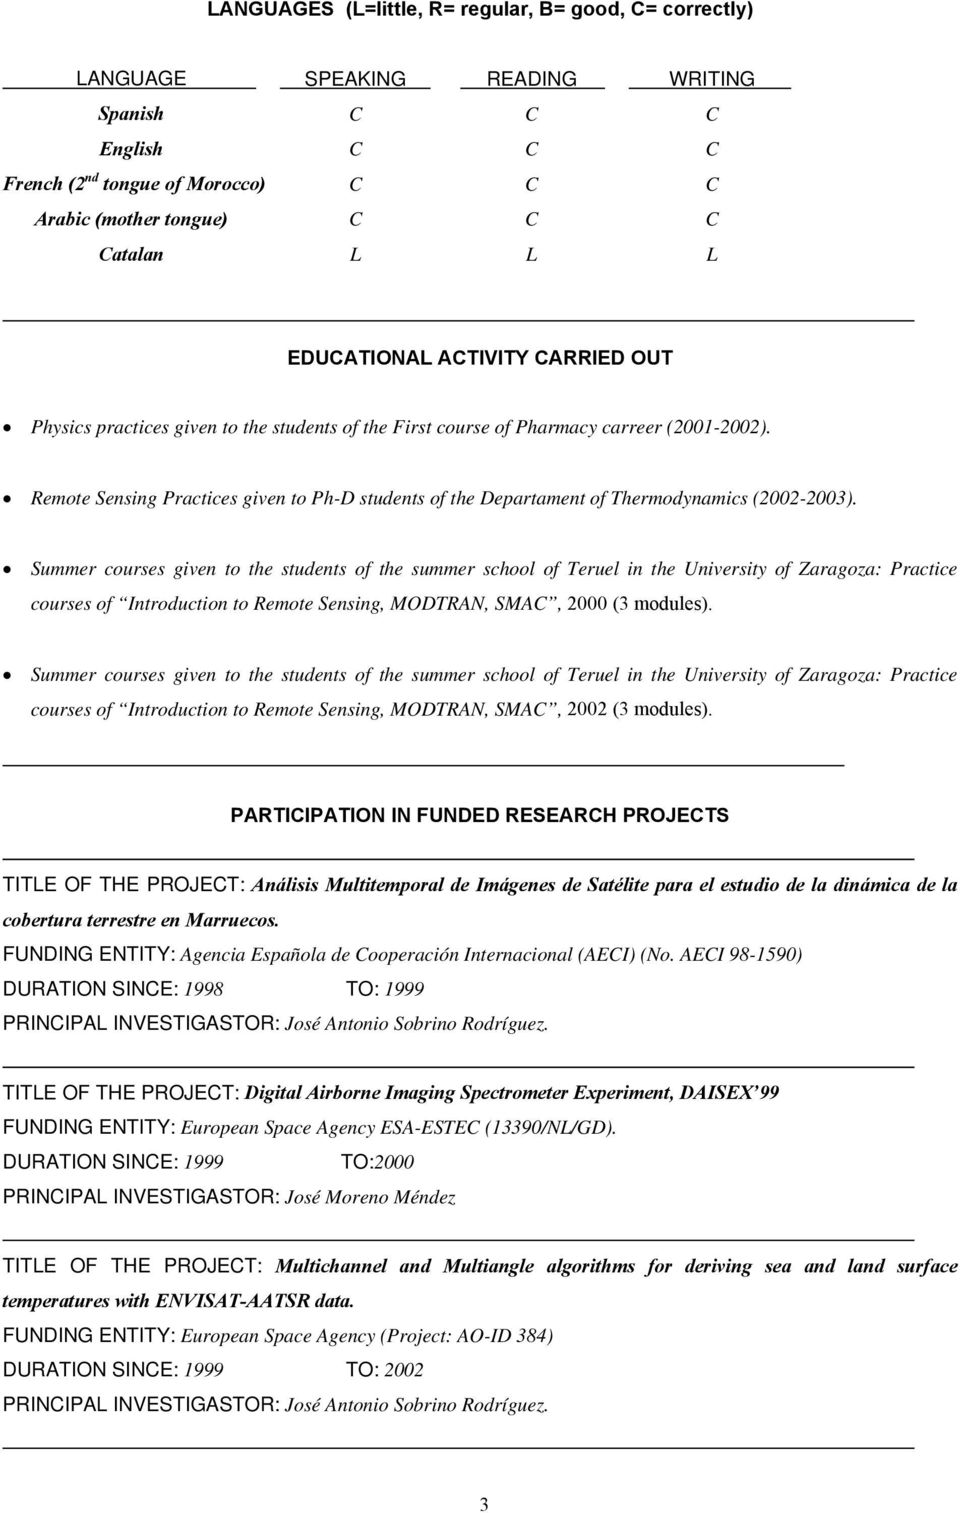 Remote Sensing Practices given to Ph-D students of the Departament of Thermodynamics (2002-2003).